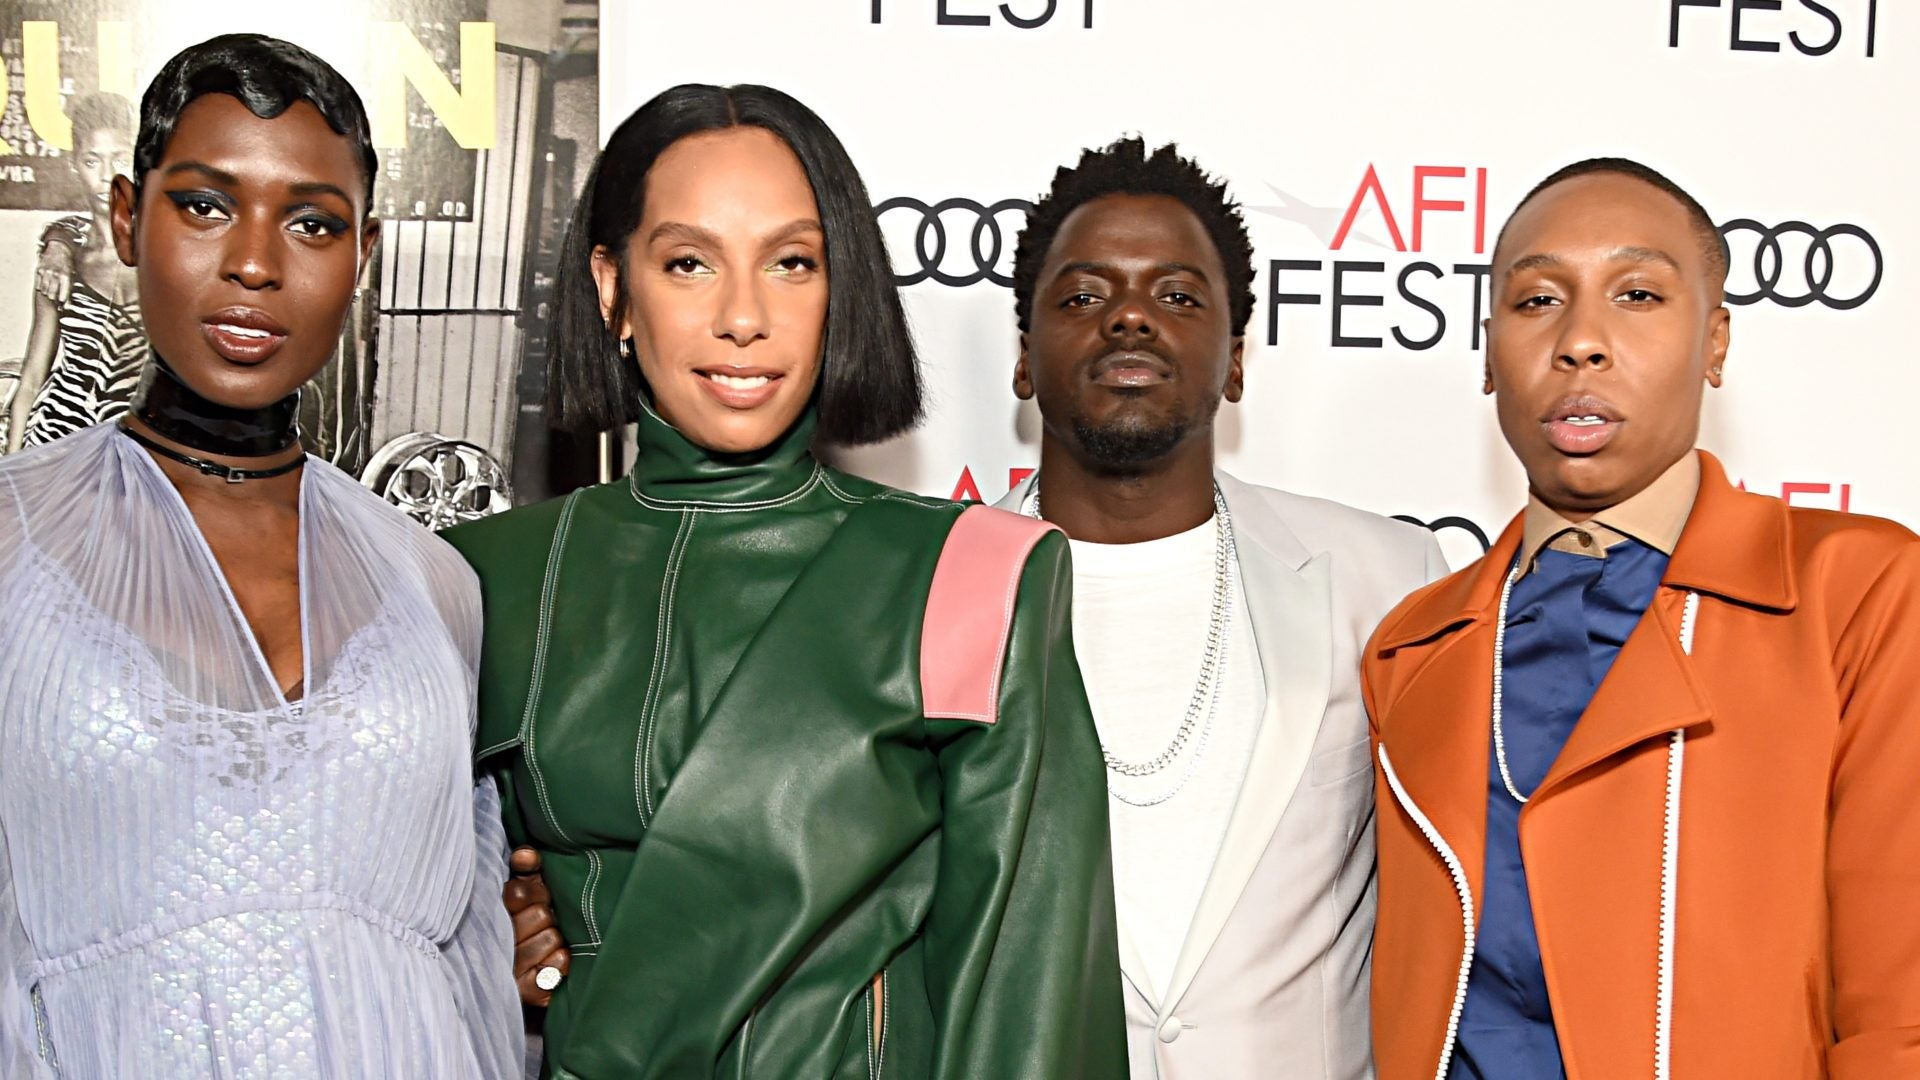 'Queen & Slim' Is Lena Waithe's Take On Being Black in America Now